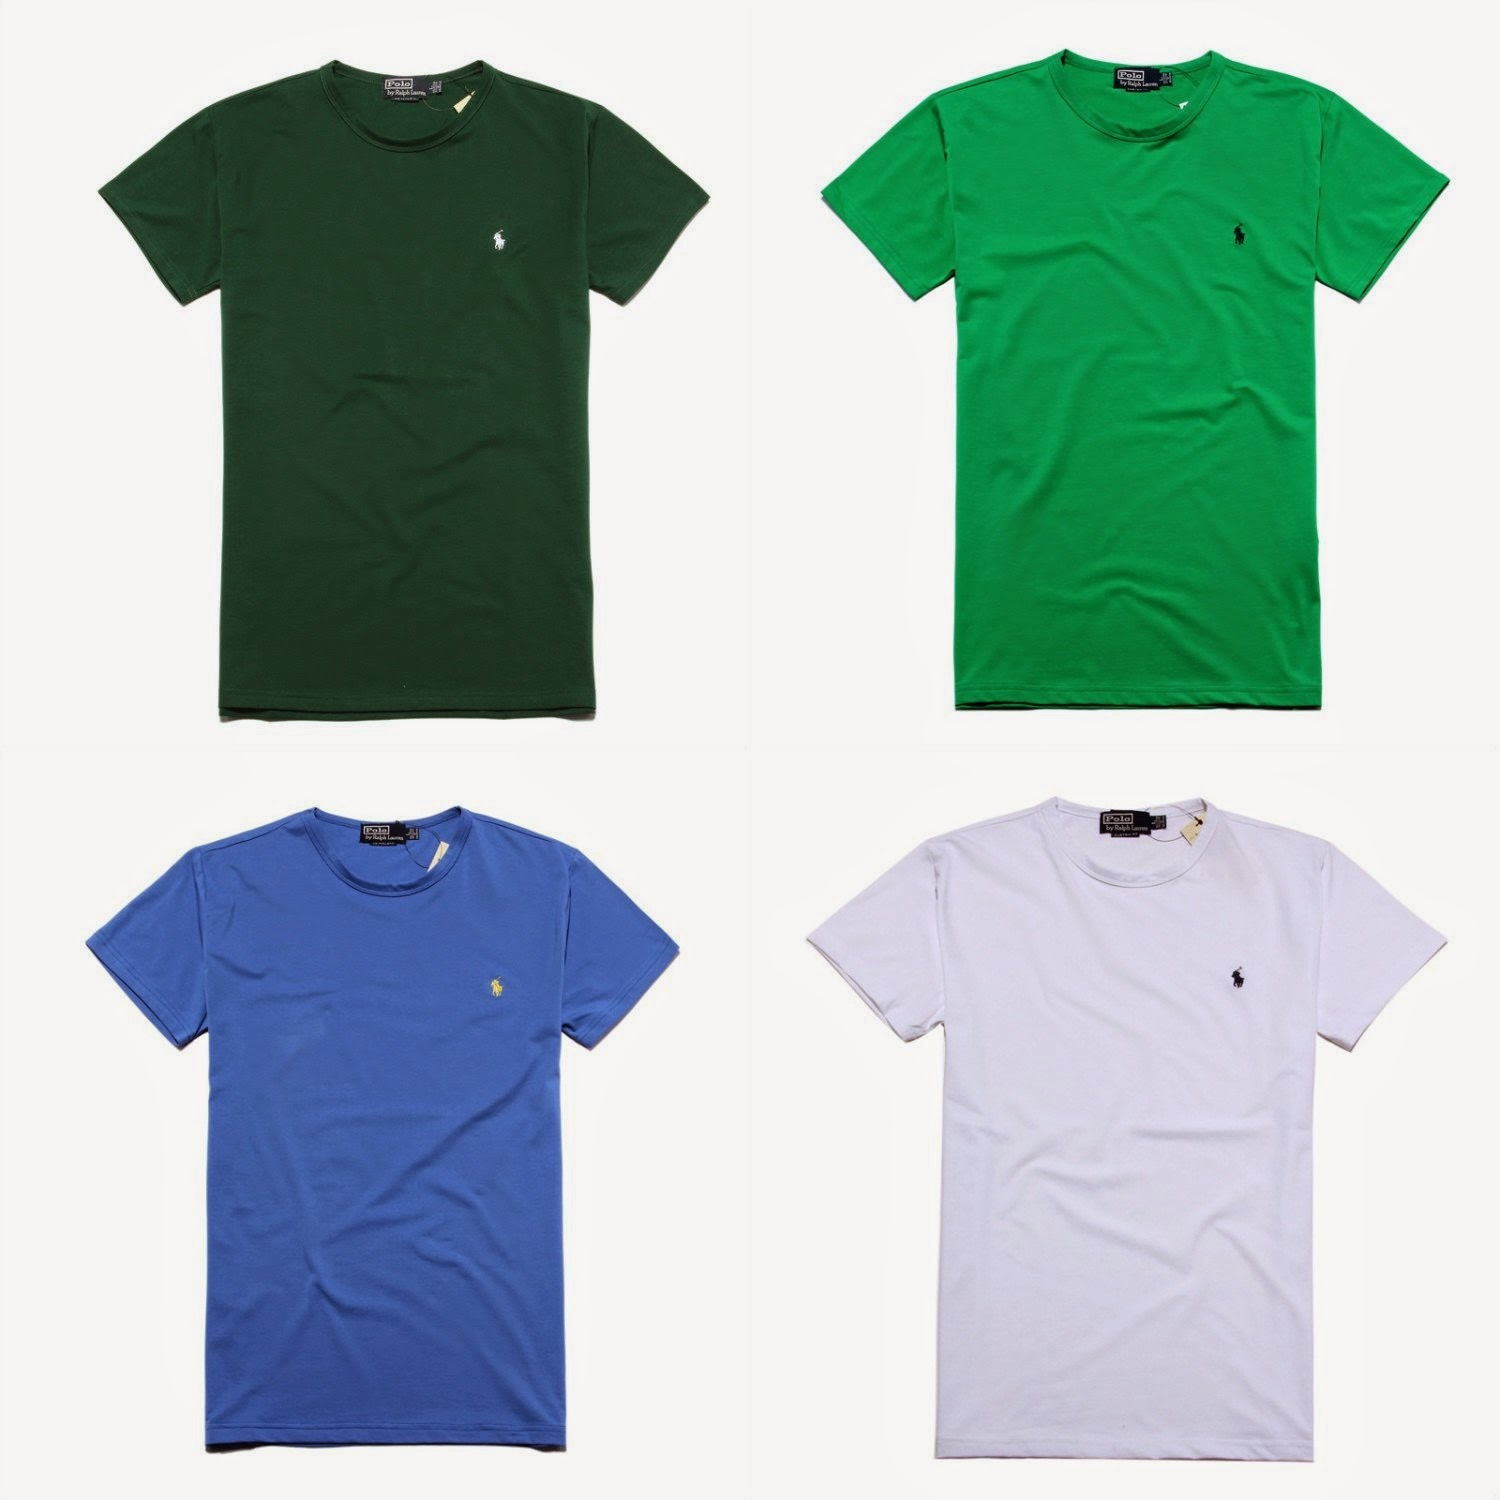 Wholesale T-Shirts Suppliers in India, Wholesale T Shirts ...